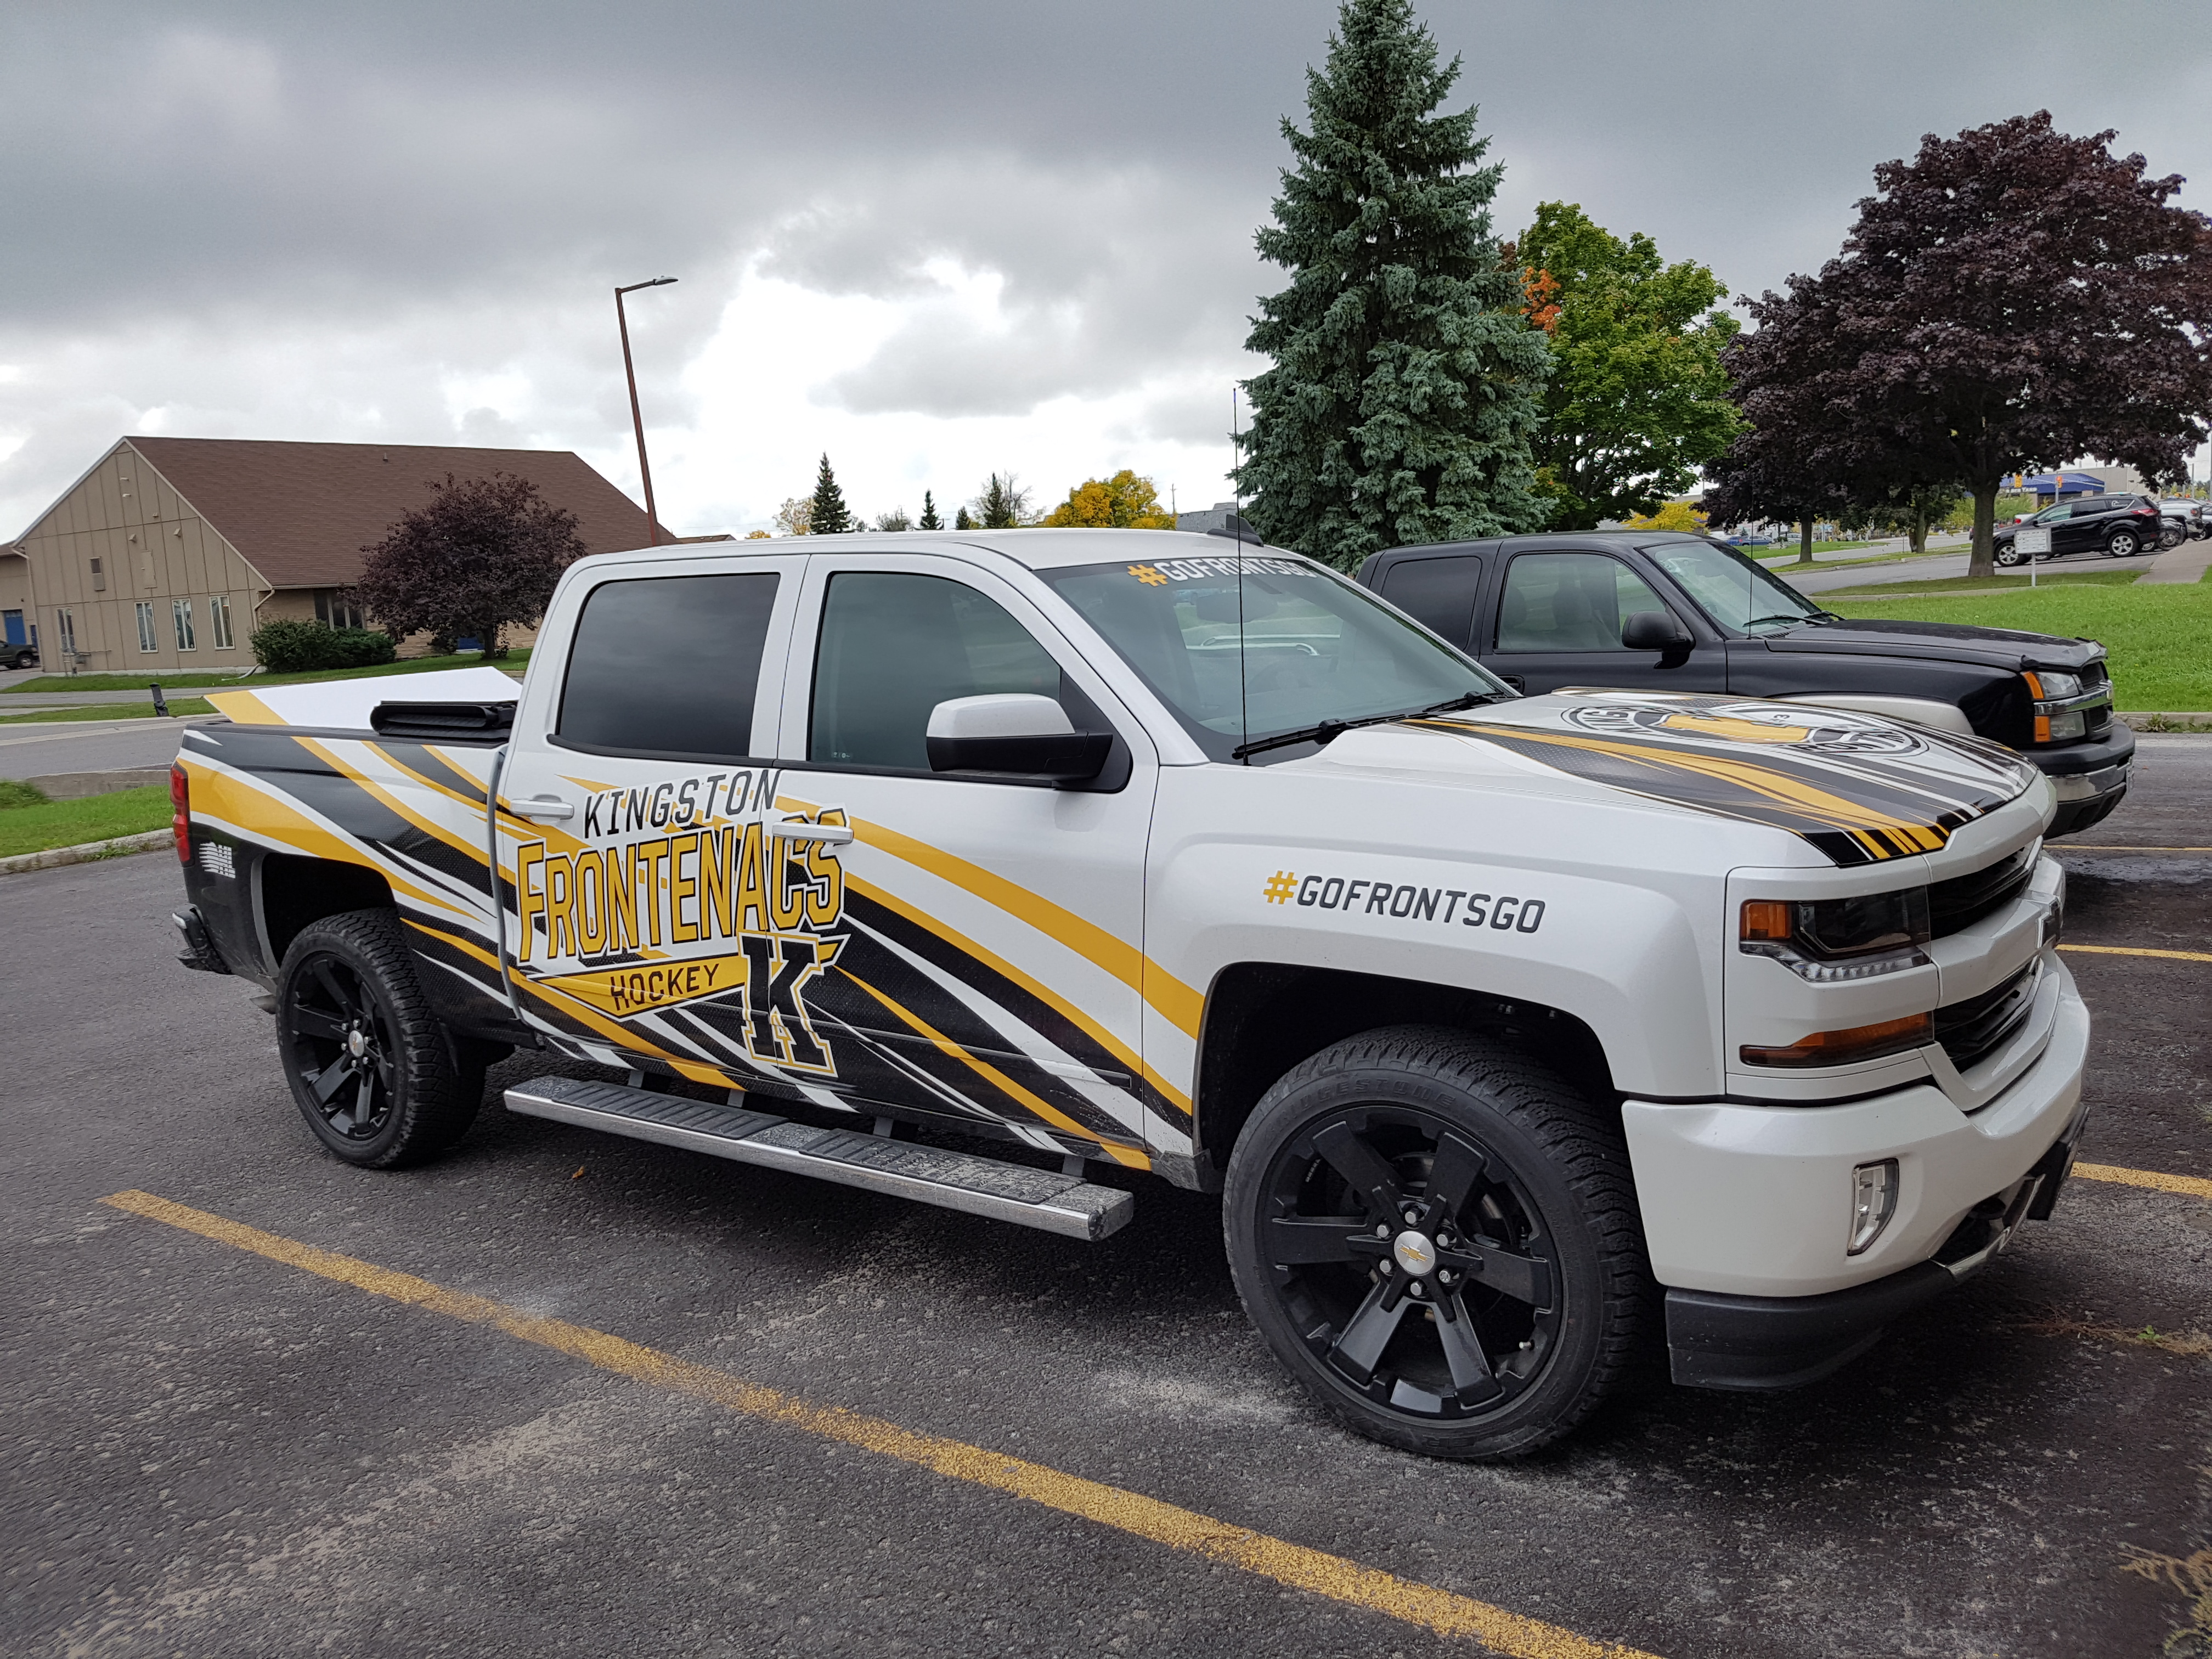 Kingston Frontenacs Silverado